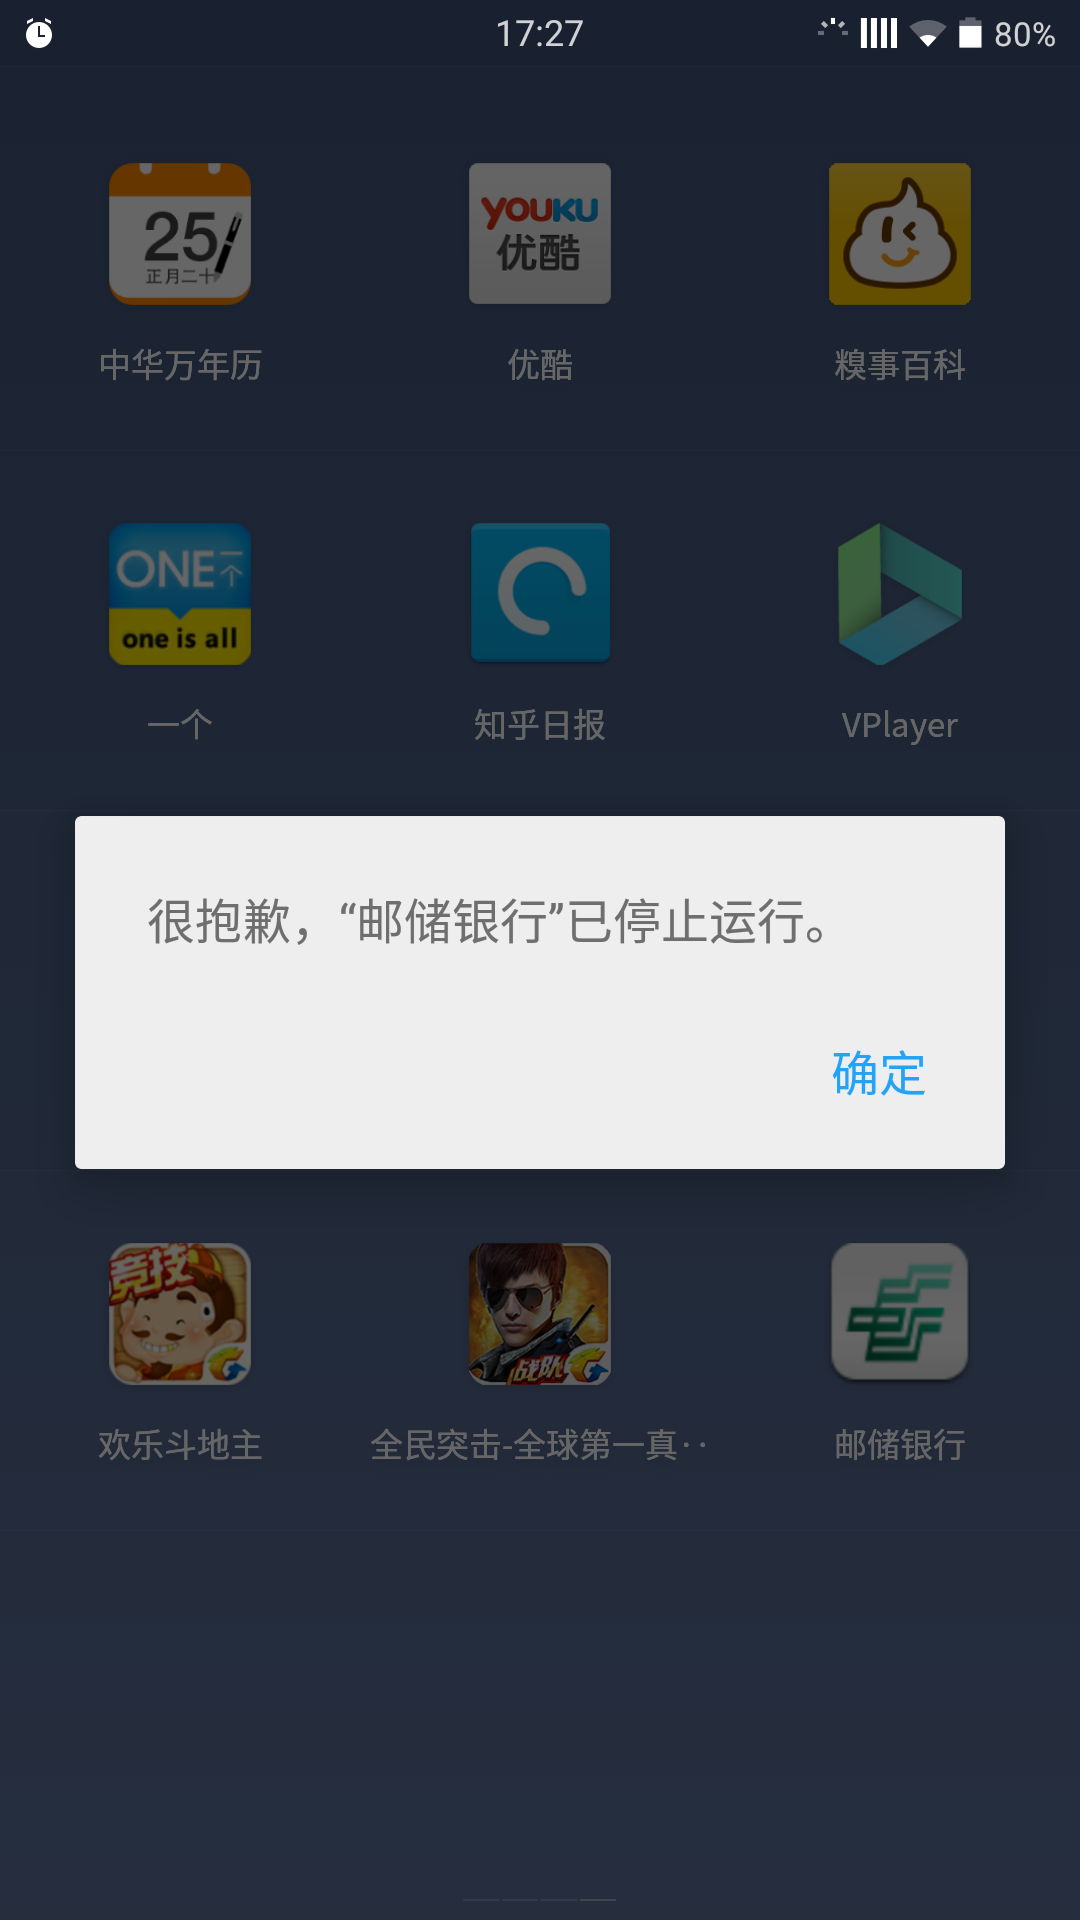 Screenshot_2015-06-07-17-27-42.png